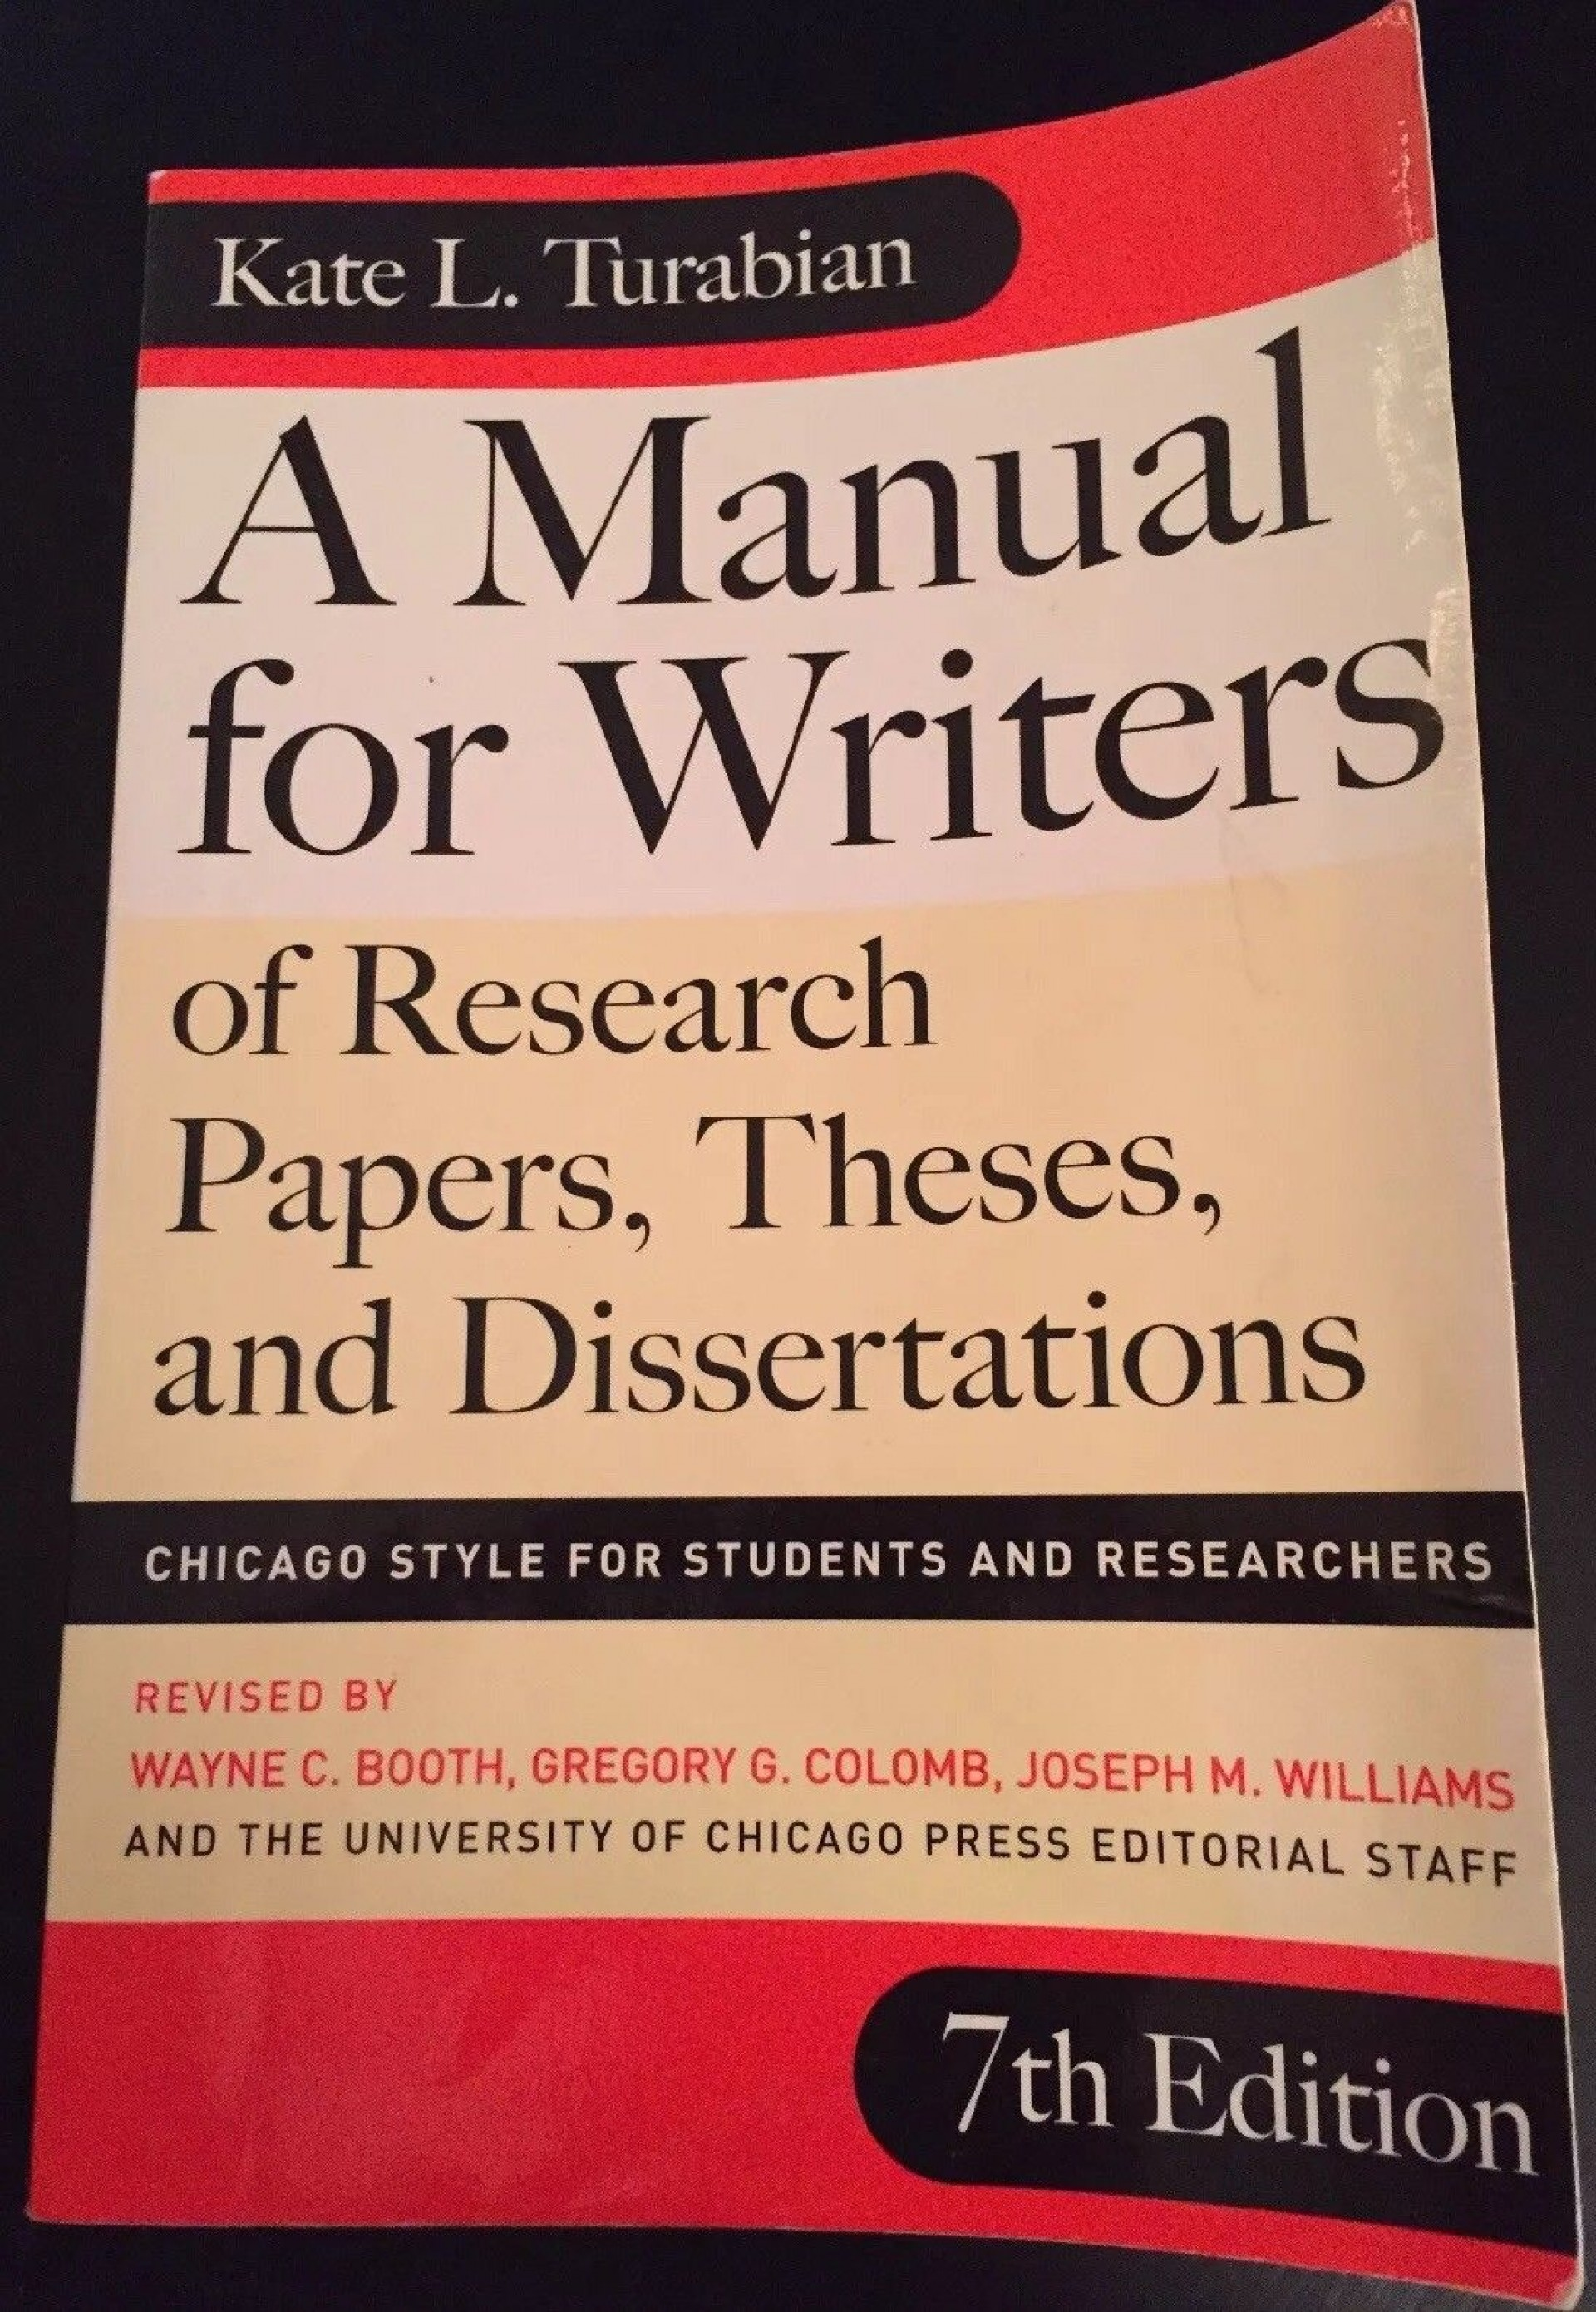 018 Research Paper Manual For Writers Of Papers Theses And Dissertations S Magnificent A Amazon 9th Edition Pdf 8th 13 1920